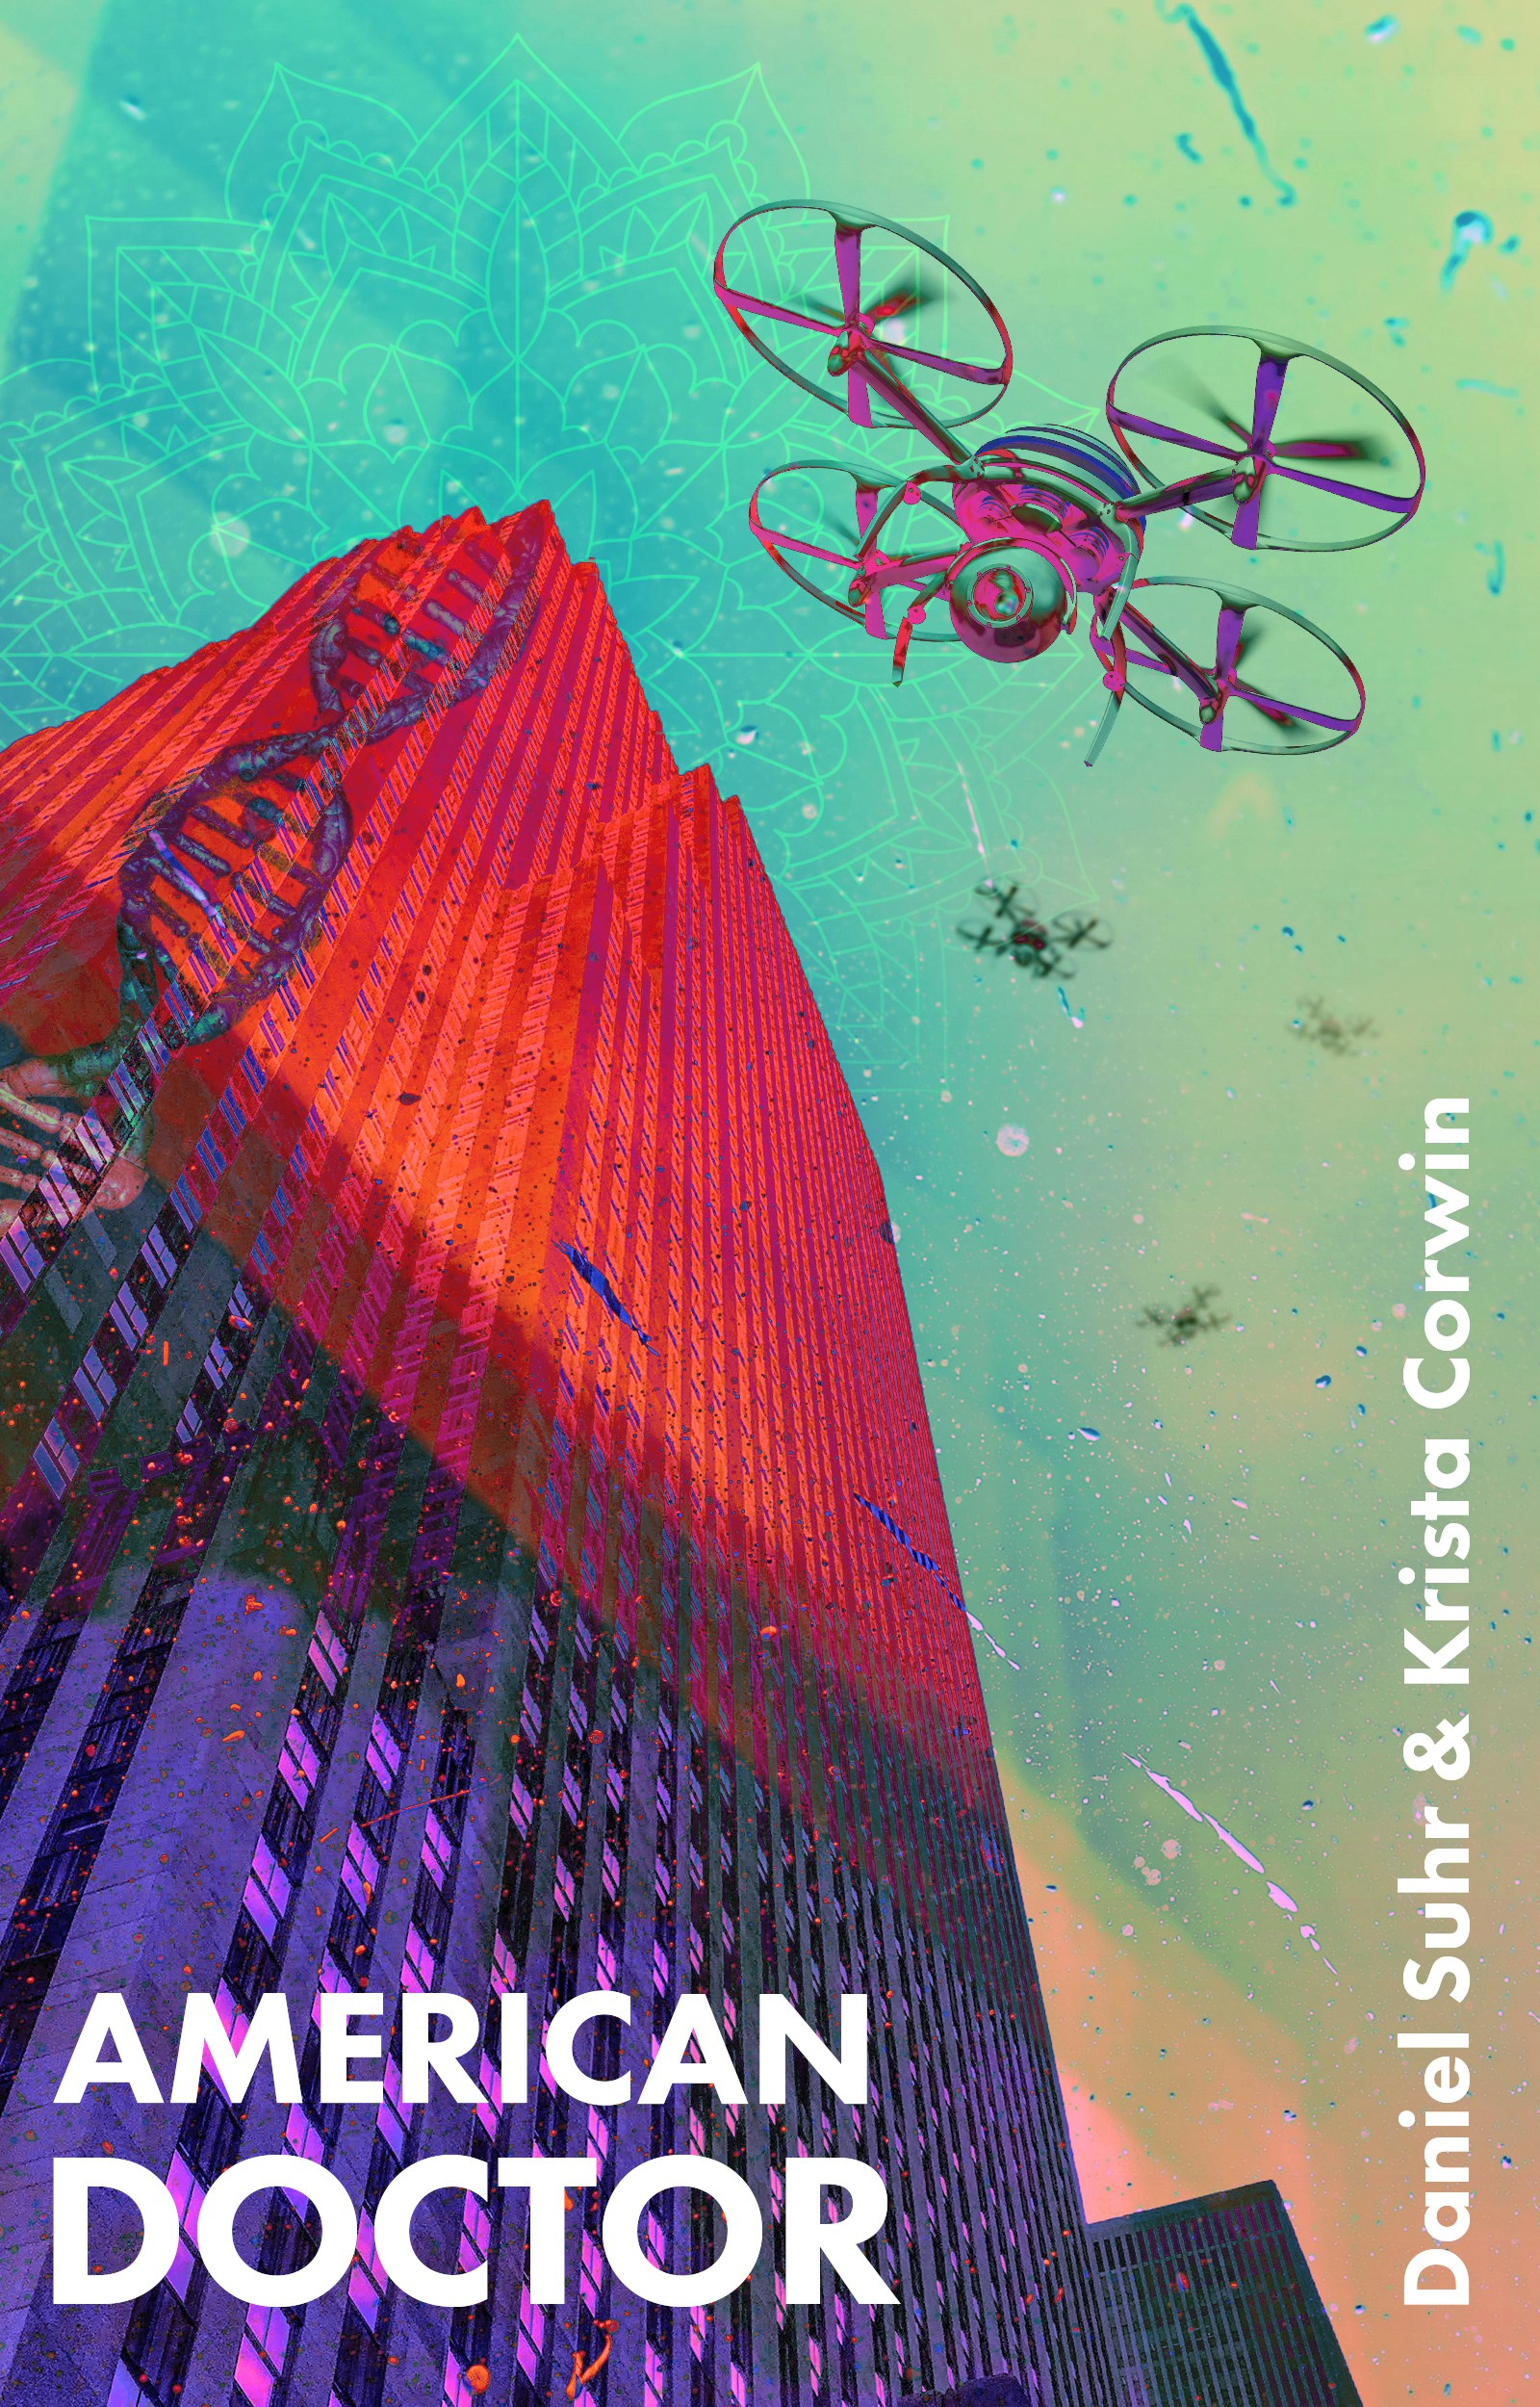 Urban/psychedelic medical thriller with diverse characters needs e-book cover